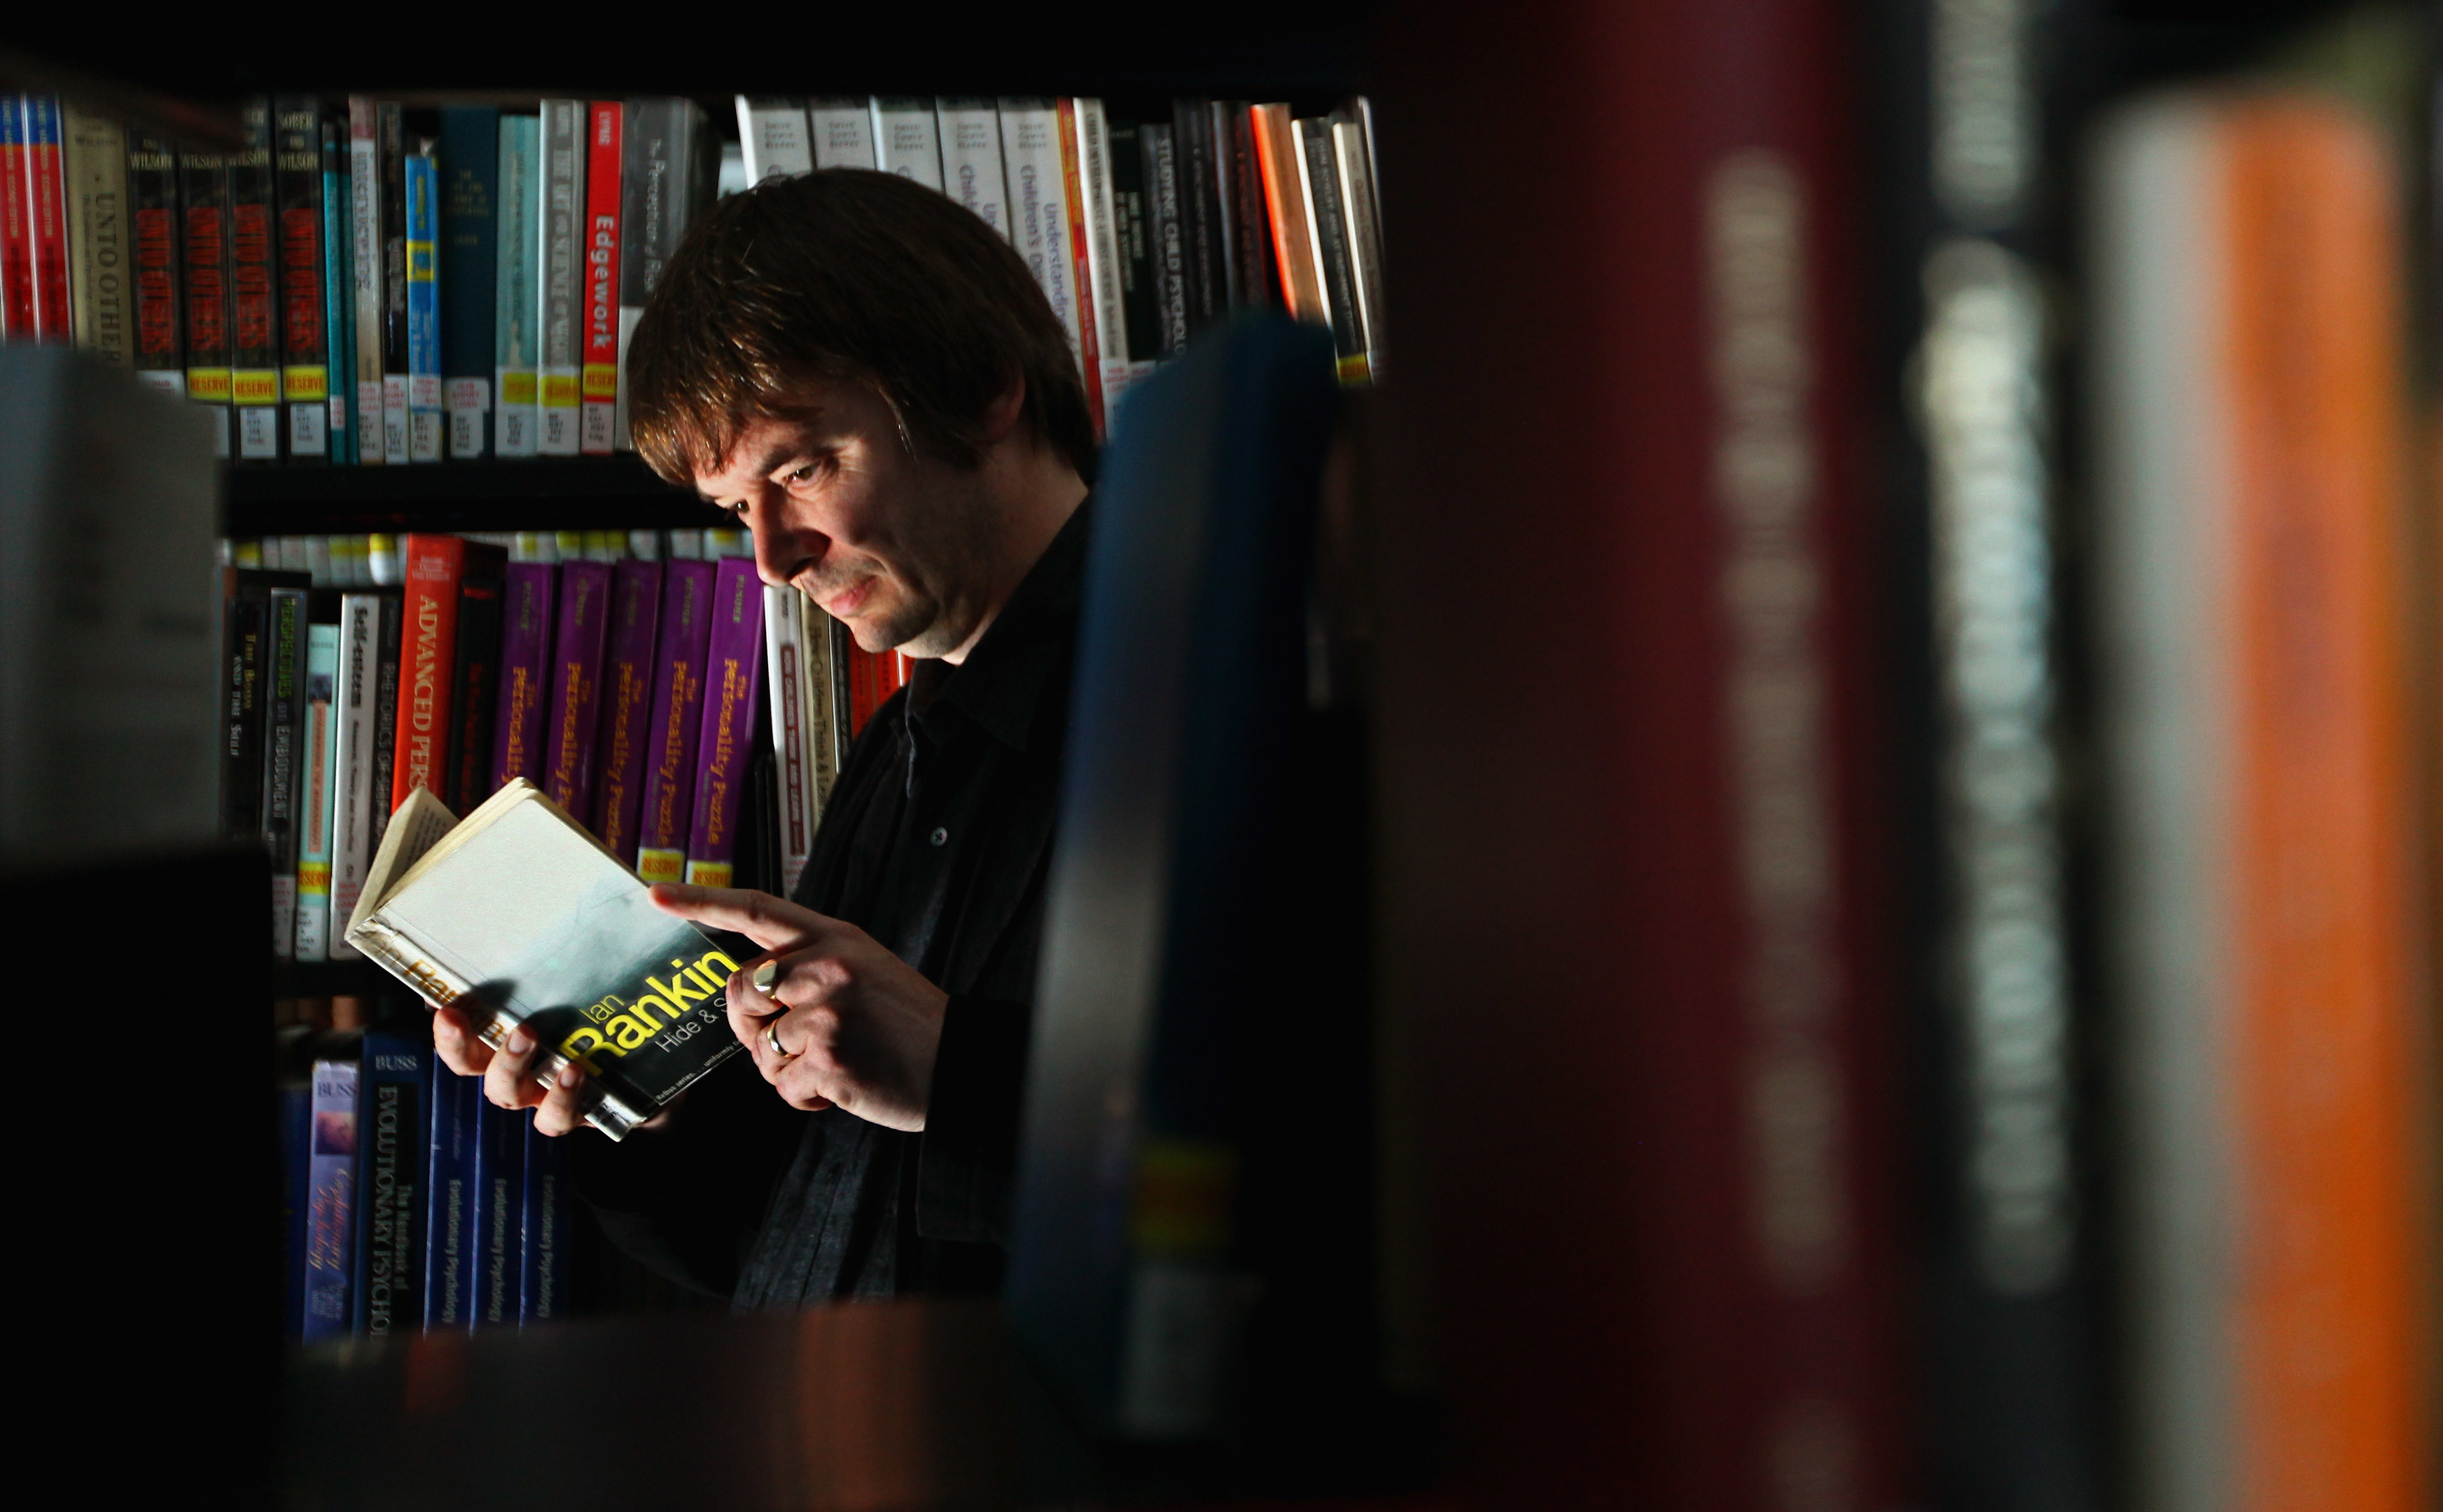 Bestselling crime writer Ian Rankin (Photo by Jeff J Mitchell/Getty Images)